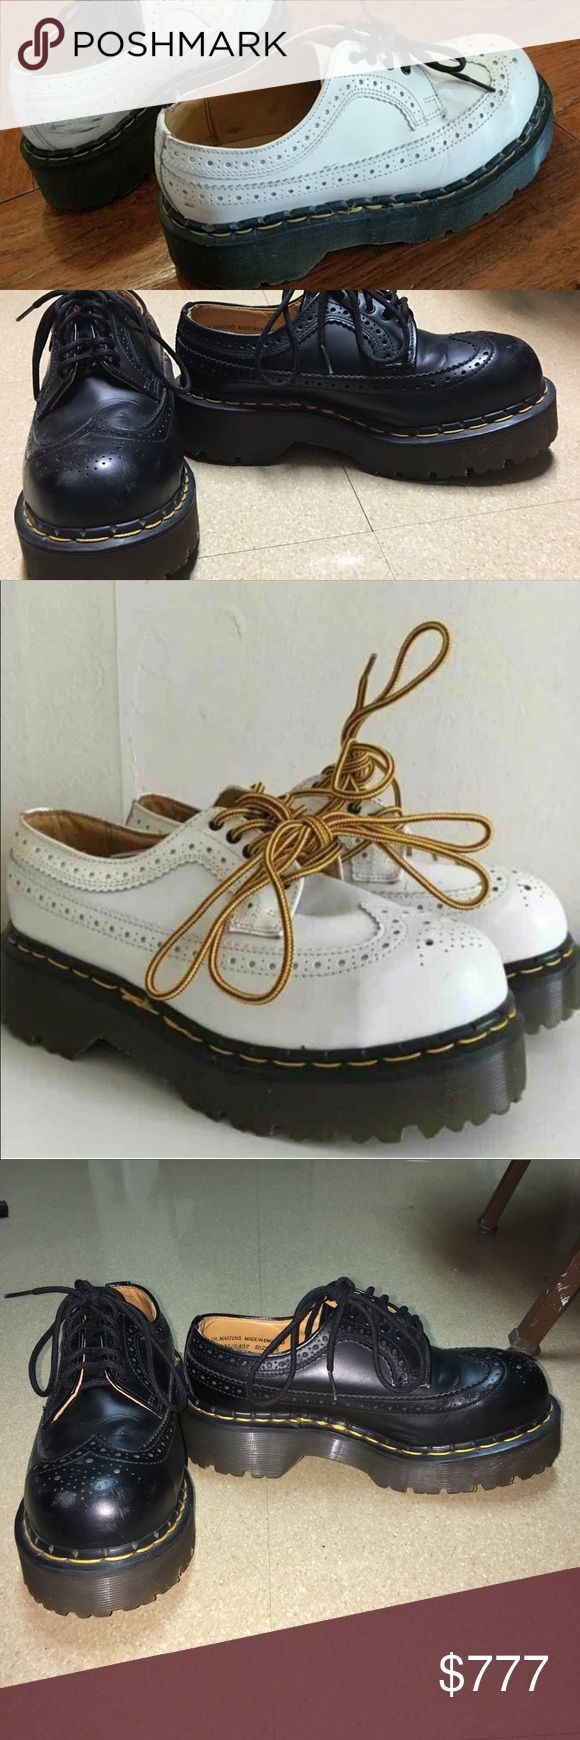 Major ISO platform Steel Toe Doc Martens I owned a white pair but a bunch of my stuff got stollen recently including those. Bought two different black pair that were either too small or big.  In need of a women's US size 7.  Platform and steel toe- black or white, or another similar style Dr. Martens Shoes Platforms